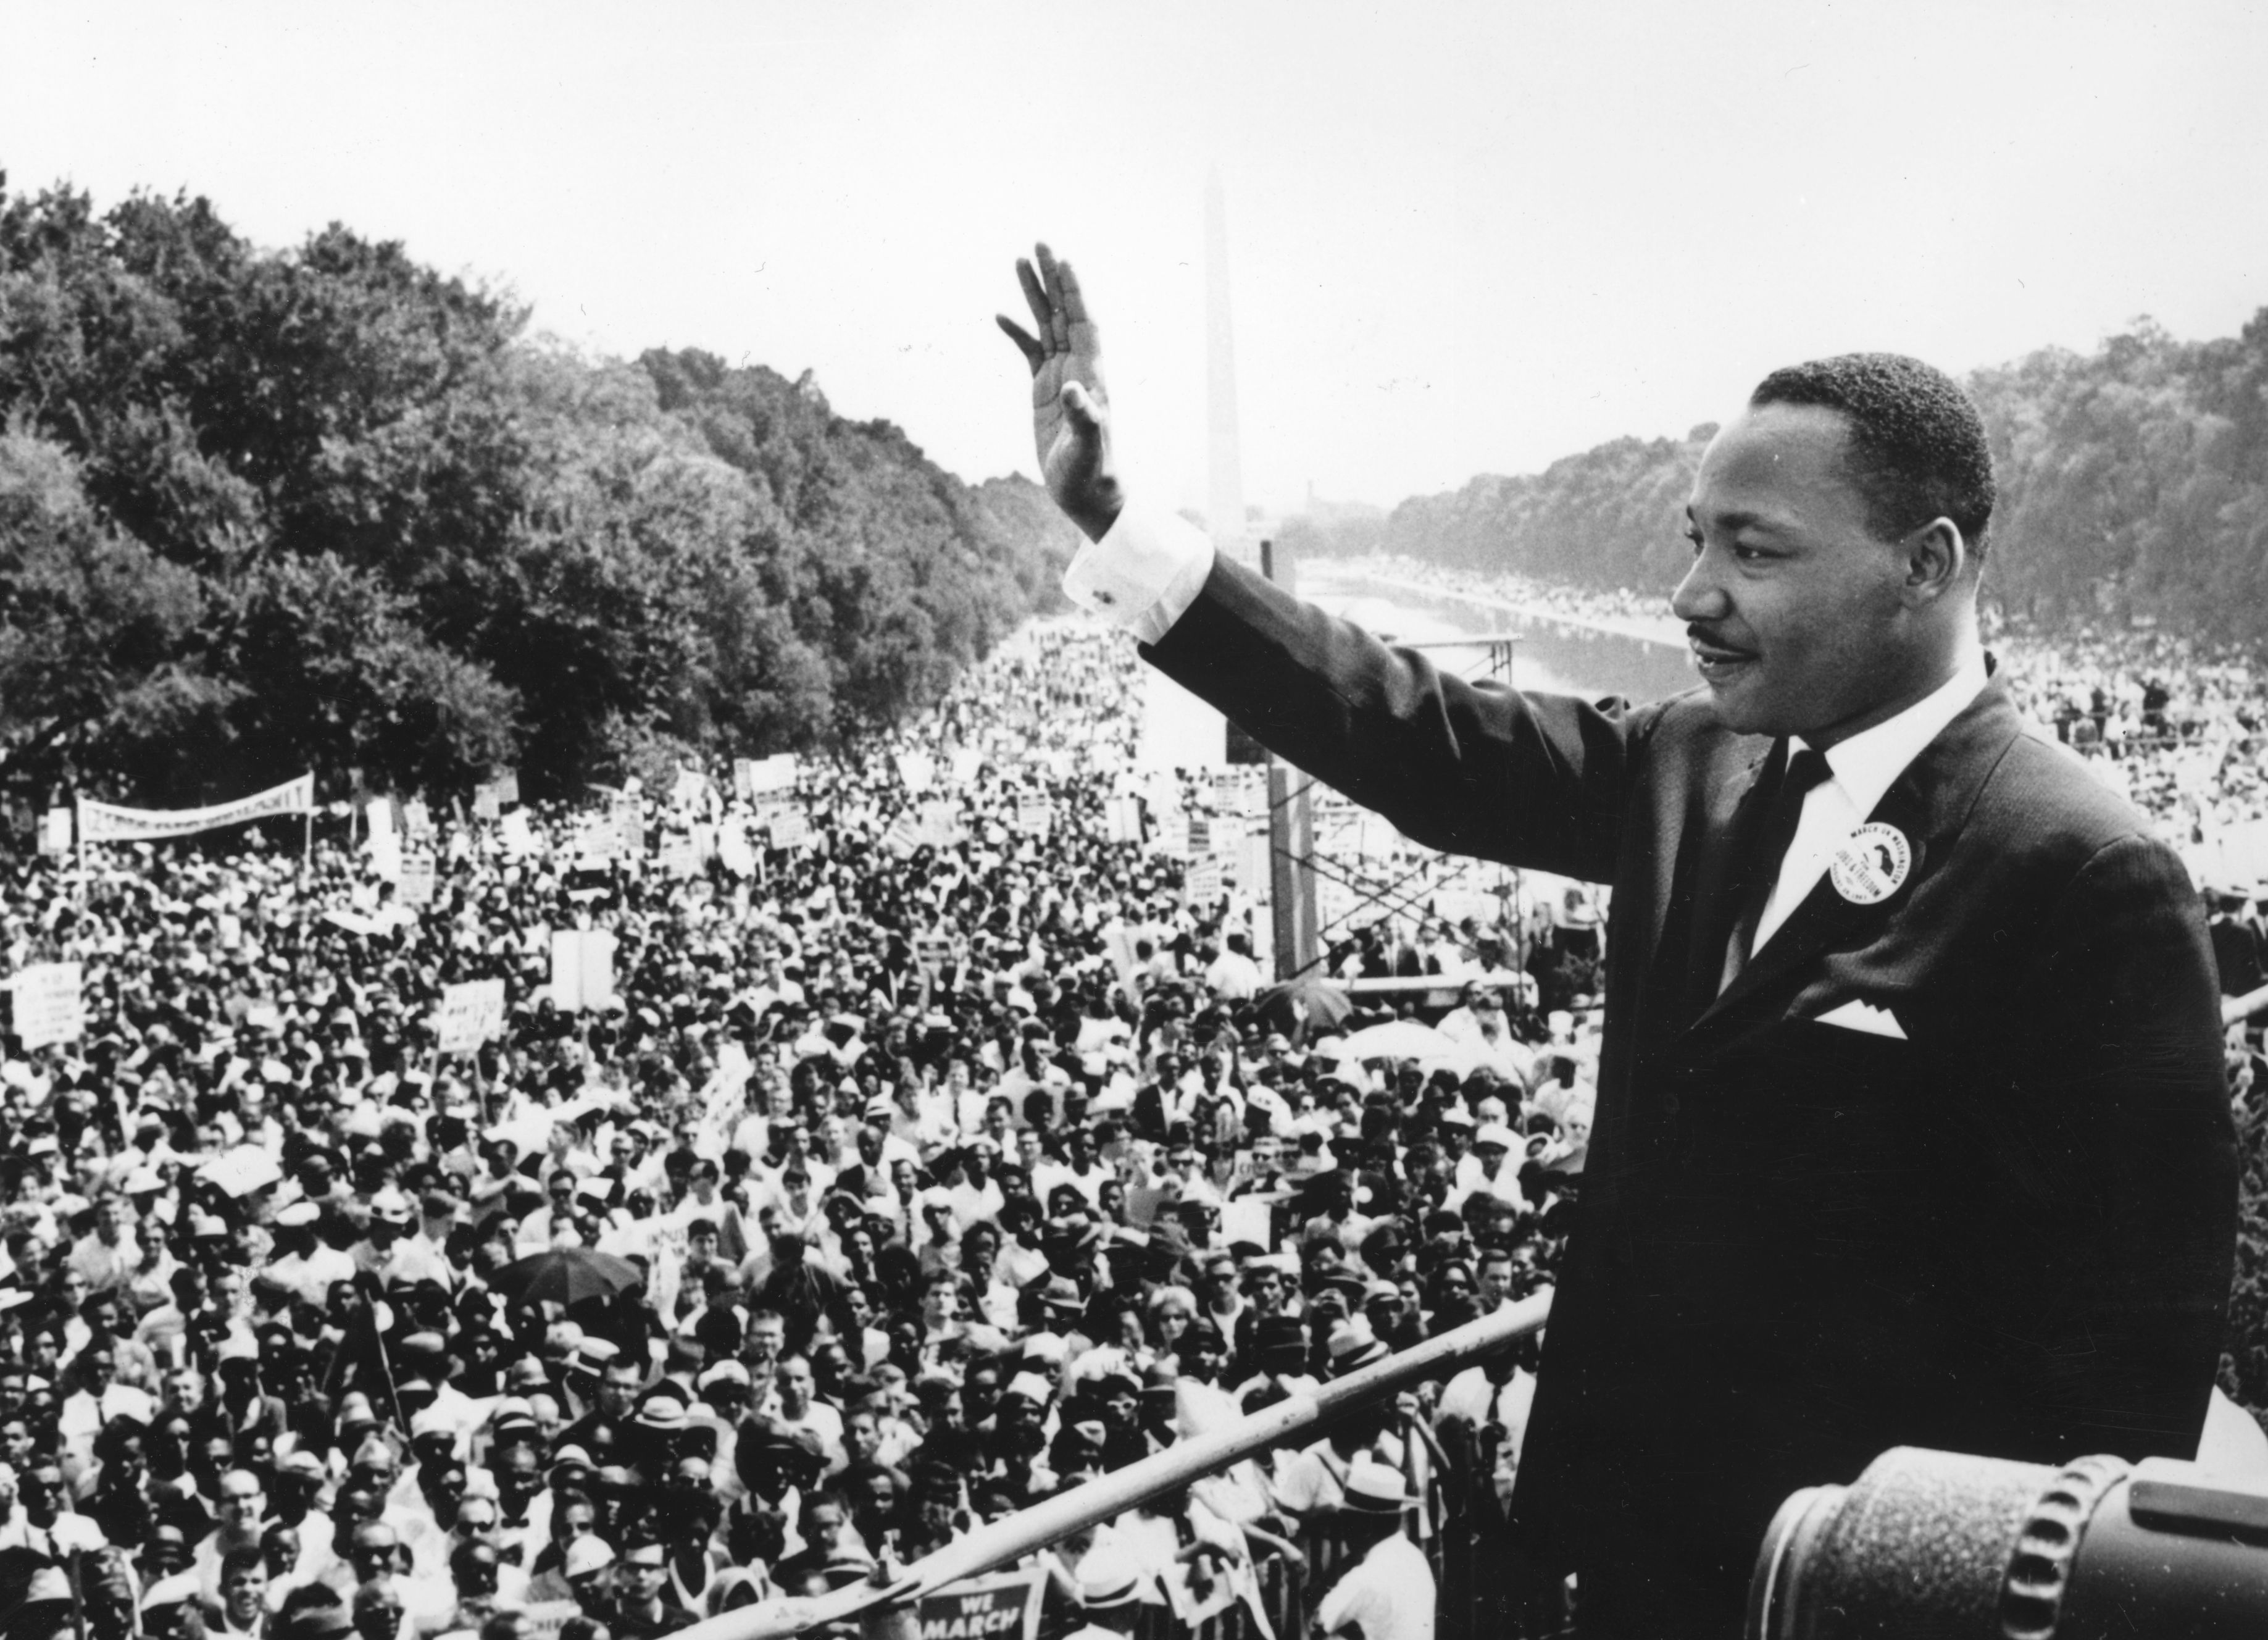 When Martin Luther King was accused of inciting violence - Vox